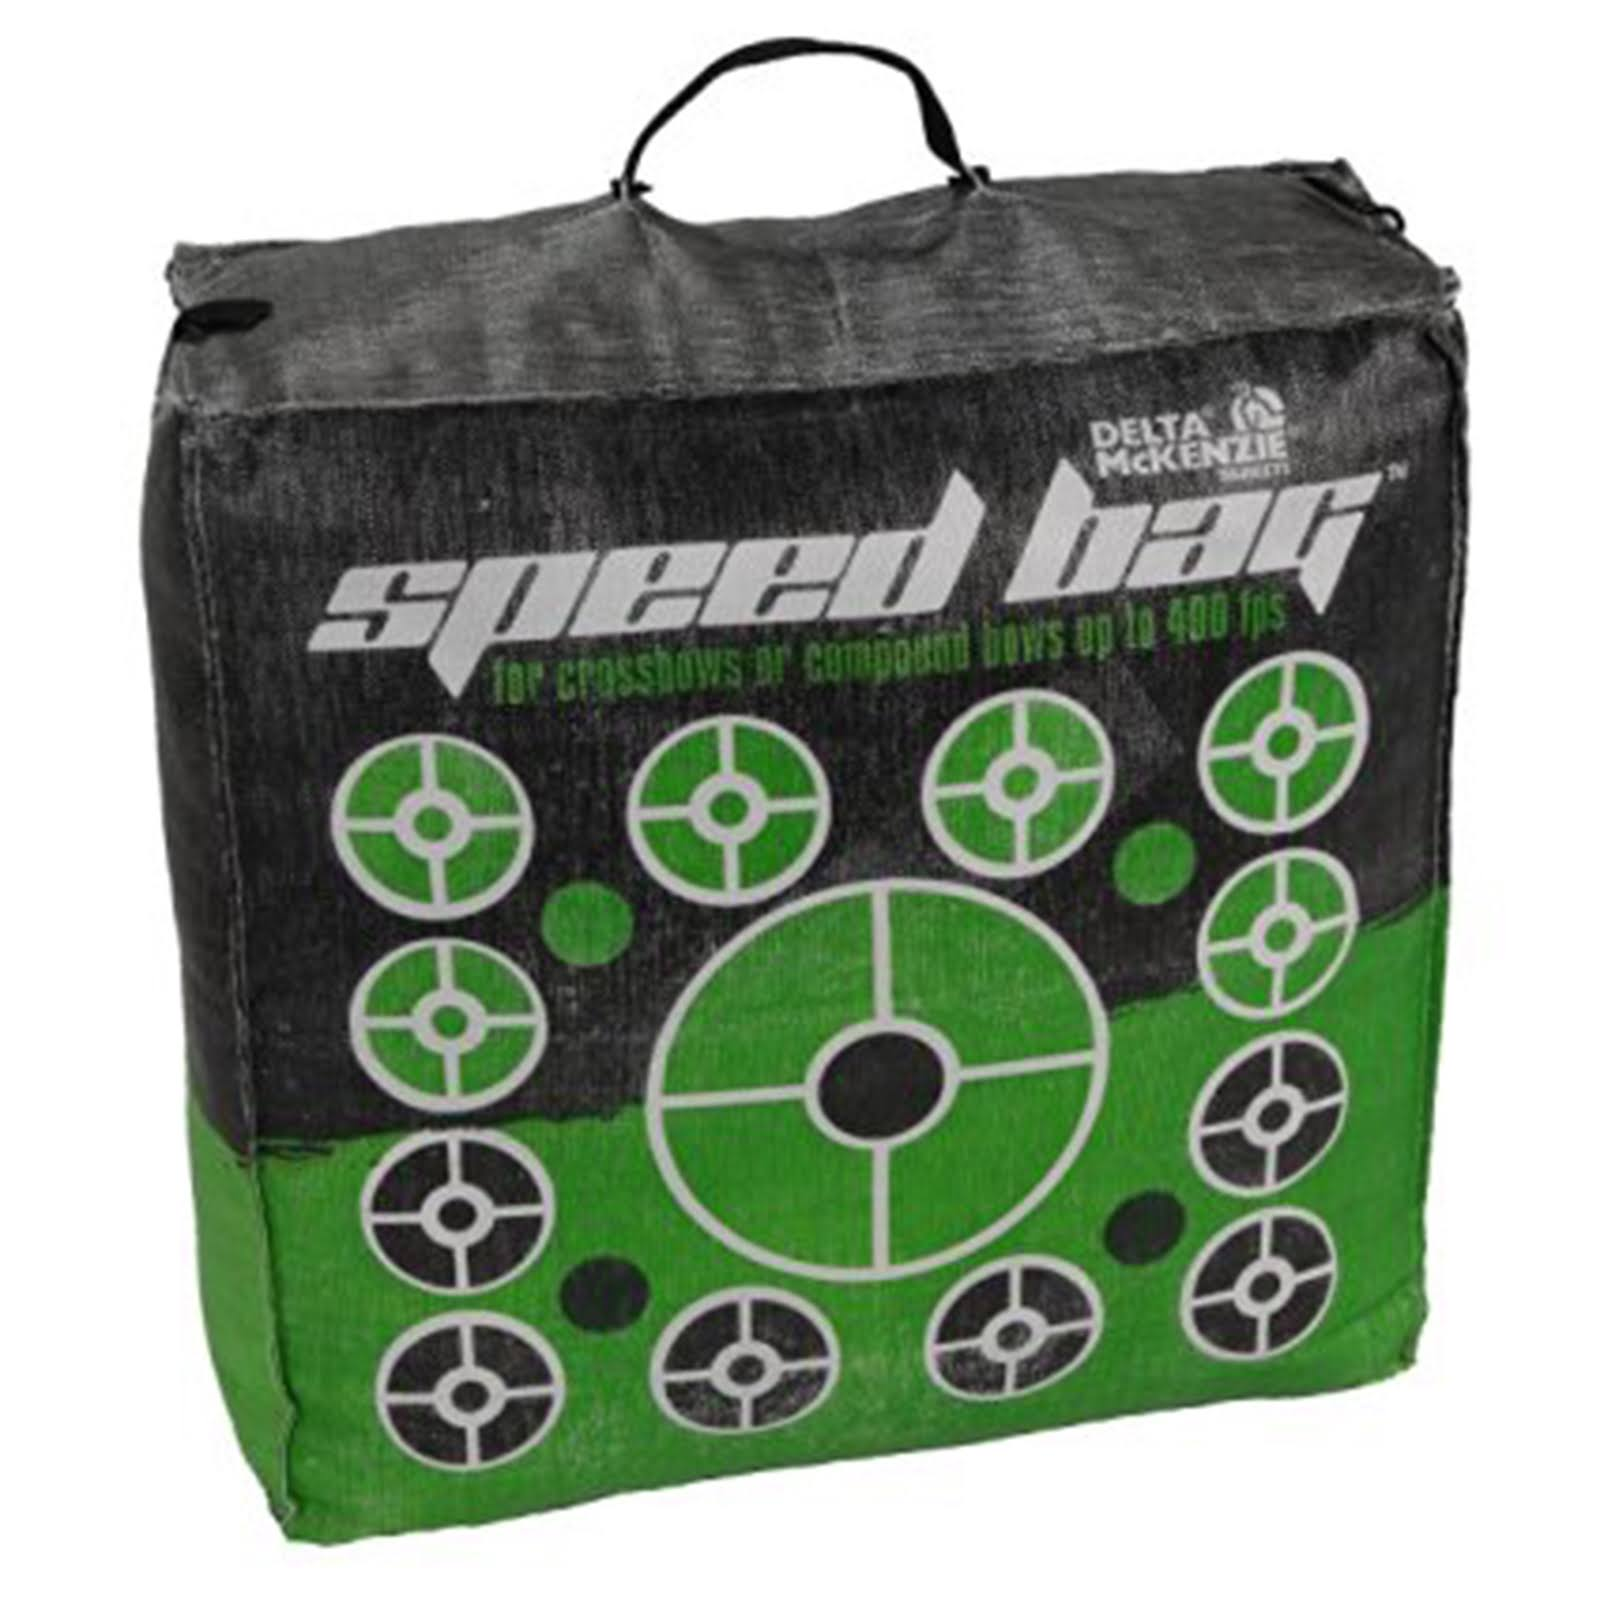 Delta McKenzie Outdoor Hunting Speed Bag Archery Target